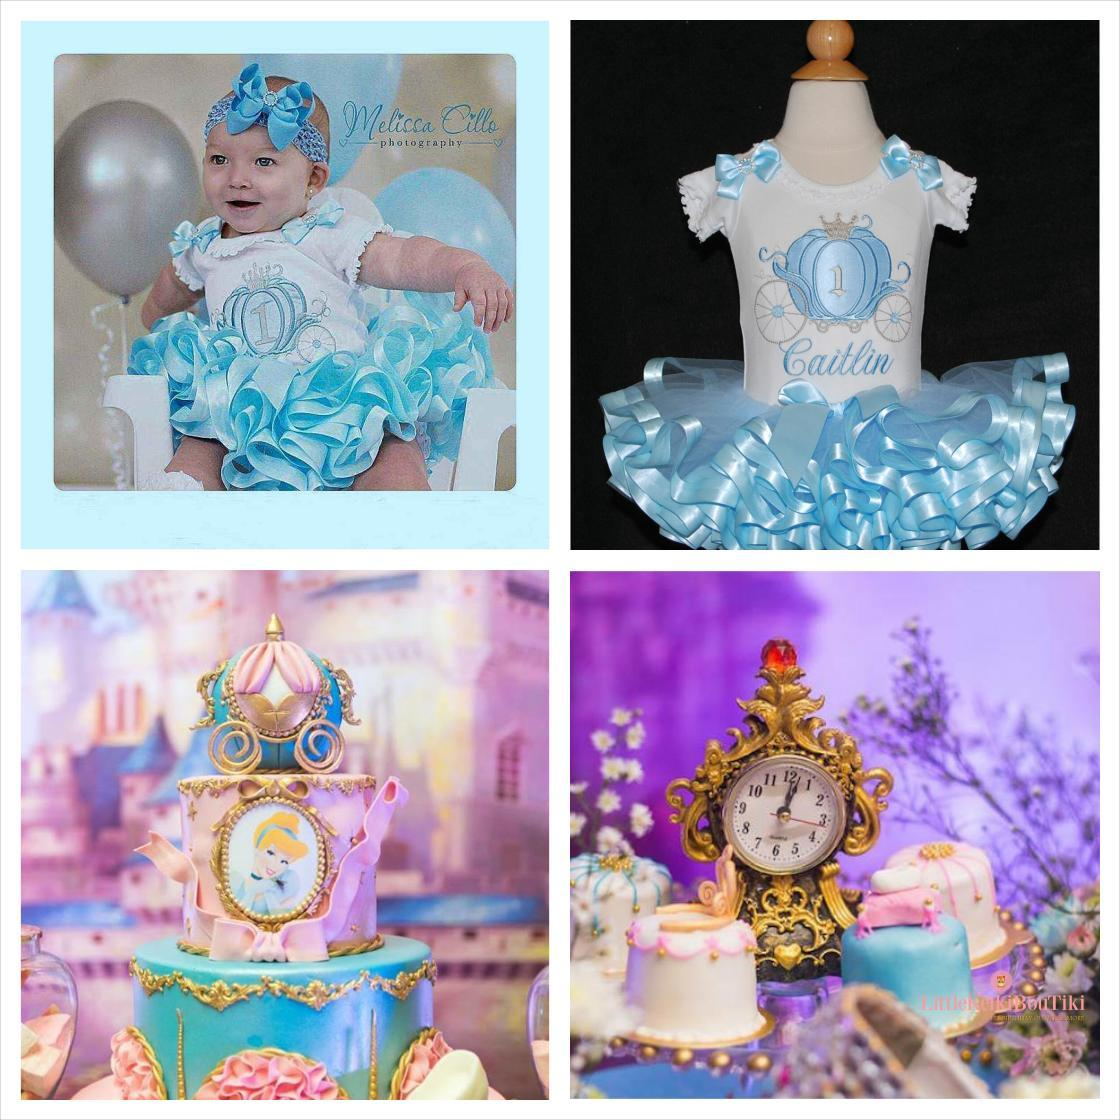 Cinderella's Carriage -1st birthday outfit girl- 4 piece set auto generated by@Outfy